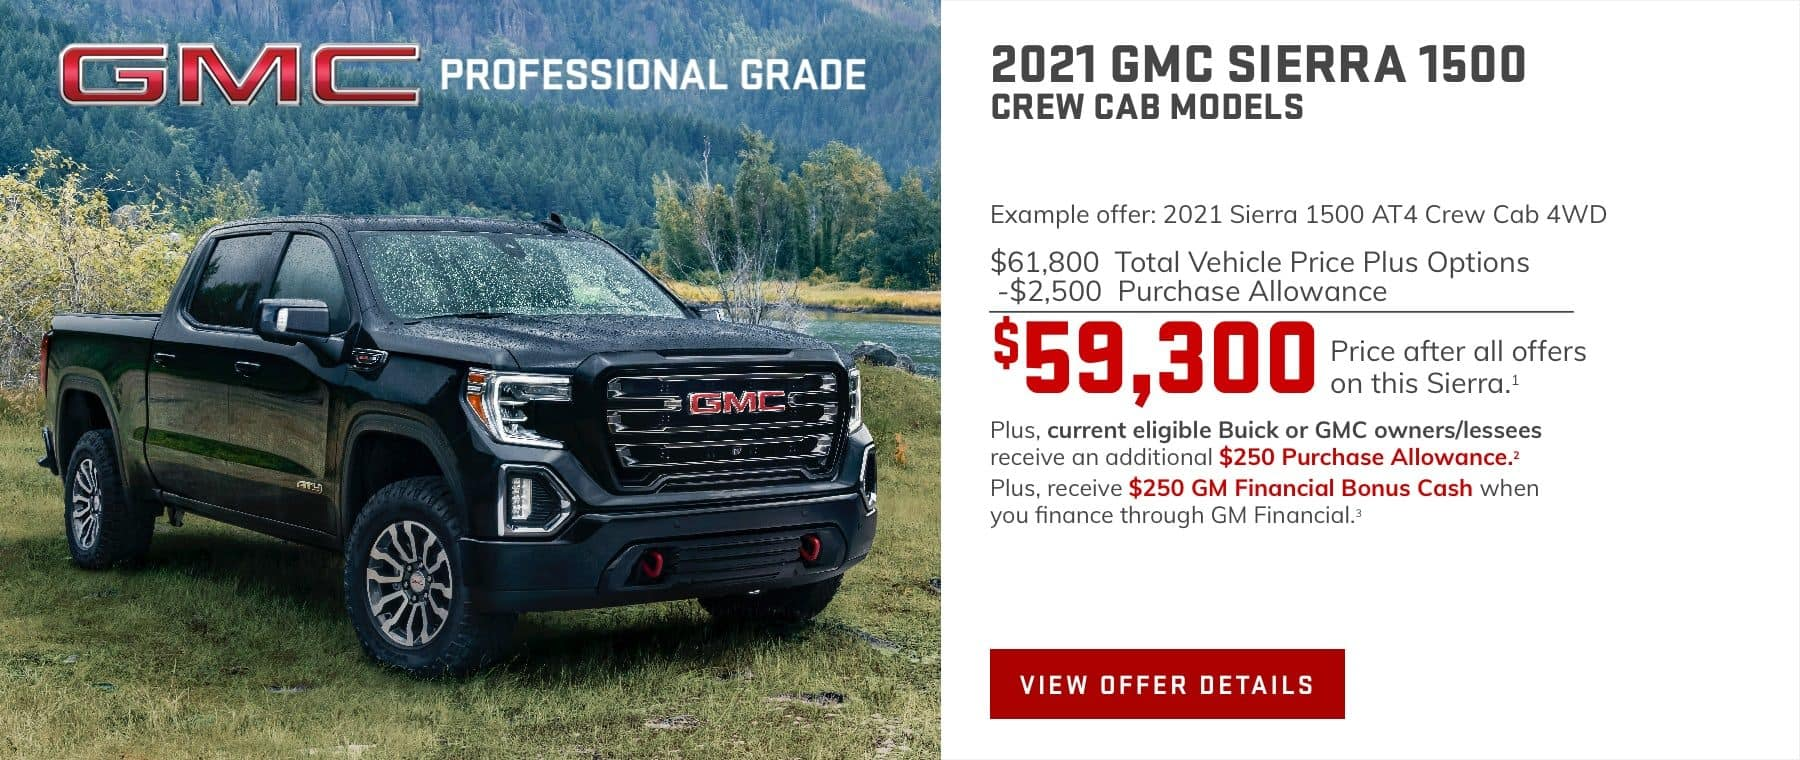 Example offer: 2021 Sierra 1500 AT4 Crew Cab 4WD $61,800 Total Vehicle Price plus Options -$2,500 Purchase Allowance $59,300 Price after all offers on this Sierra.1 Plus, current eligible Buick or GMC owners/lessees receive an additional $250 Purchase Allowance.2 Plus, receive $250 GM Financial Bonus Cash when you finance through GM Financial.3